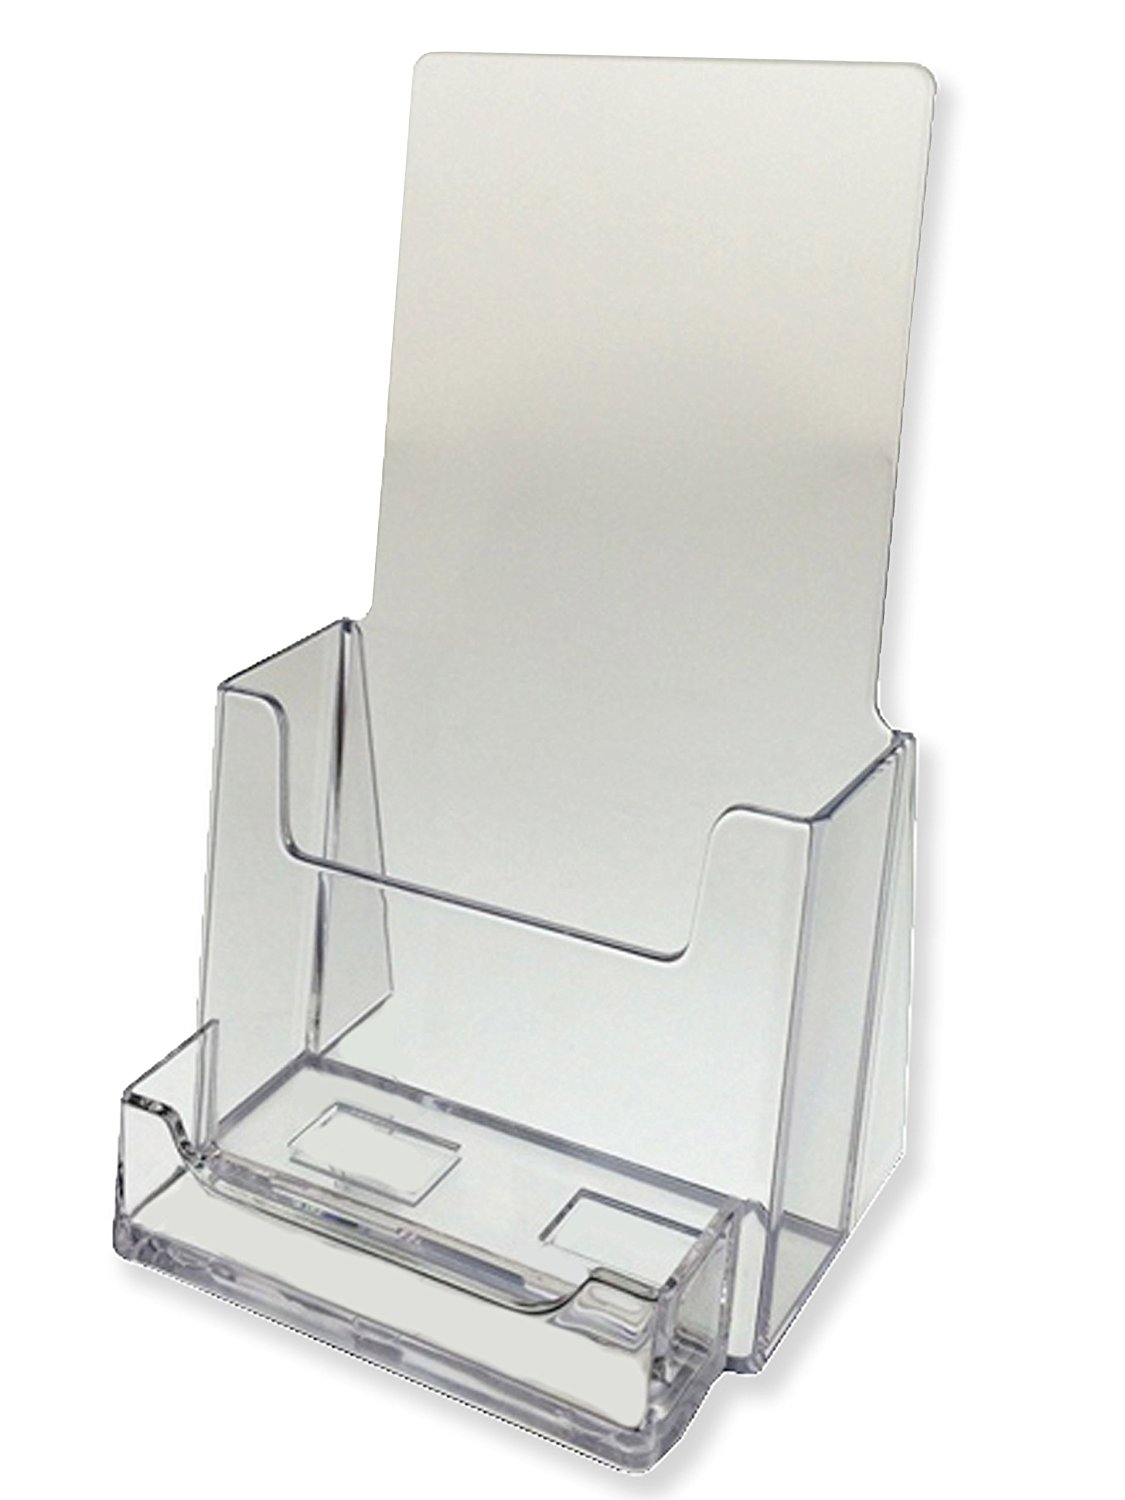 Cheap Acrylic Business Card Holders China, find Acrylic Business ...